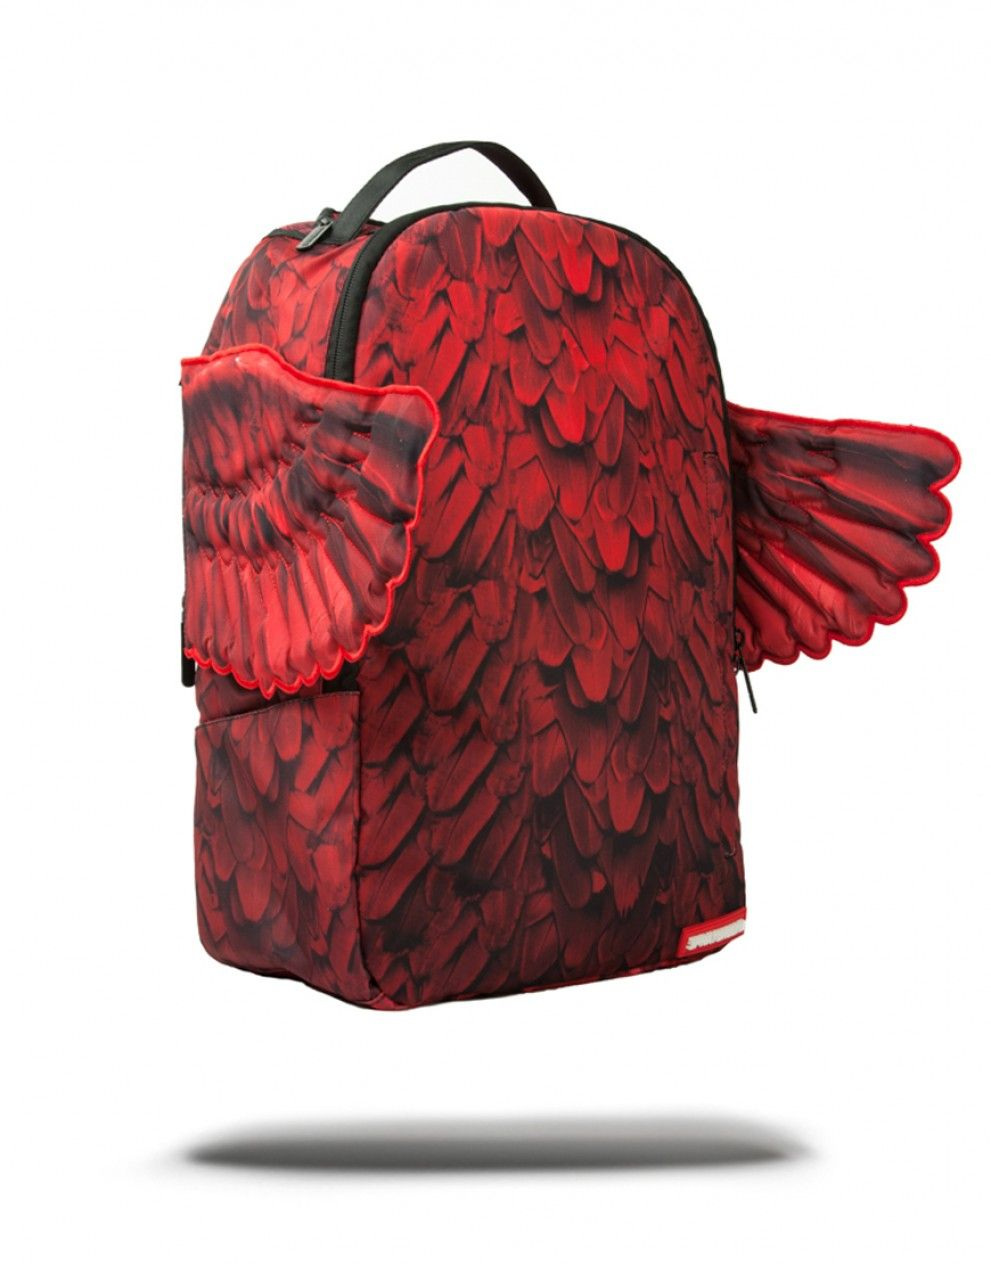 RED WINGS | Sprayground Backpacks, Bags, and Accessories | Co ...